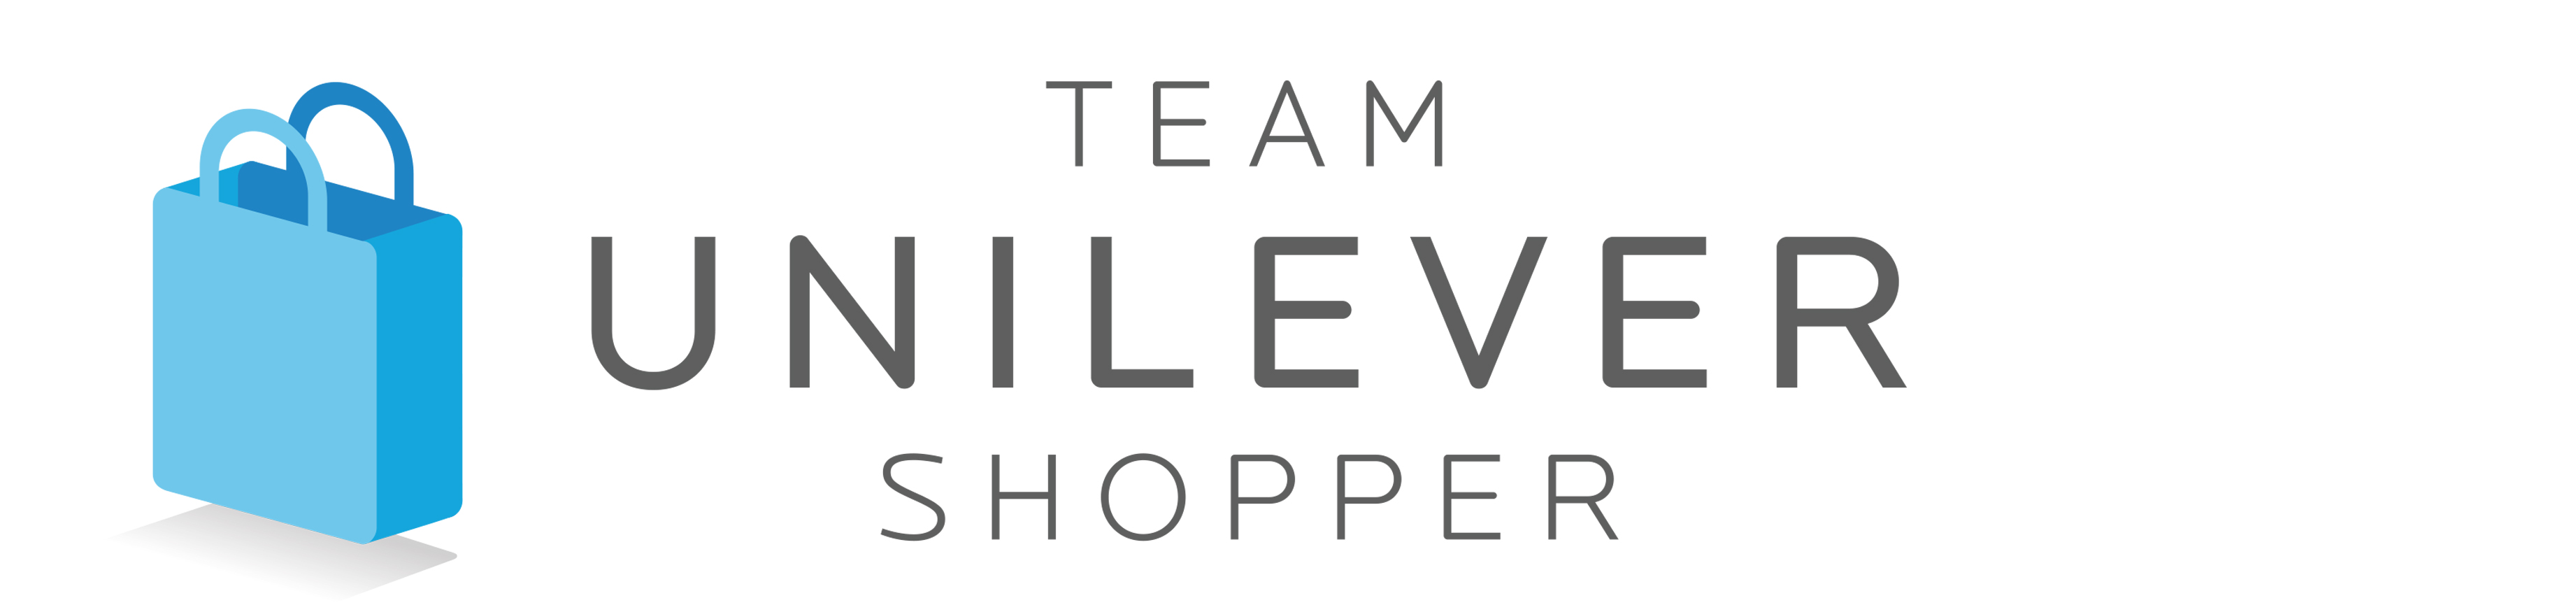 Team Unilever Shopper  Logo